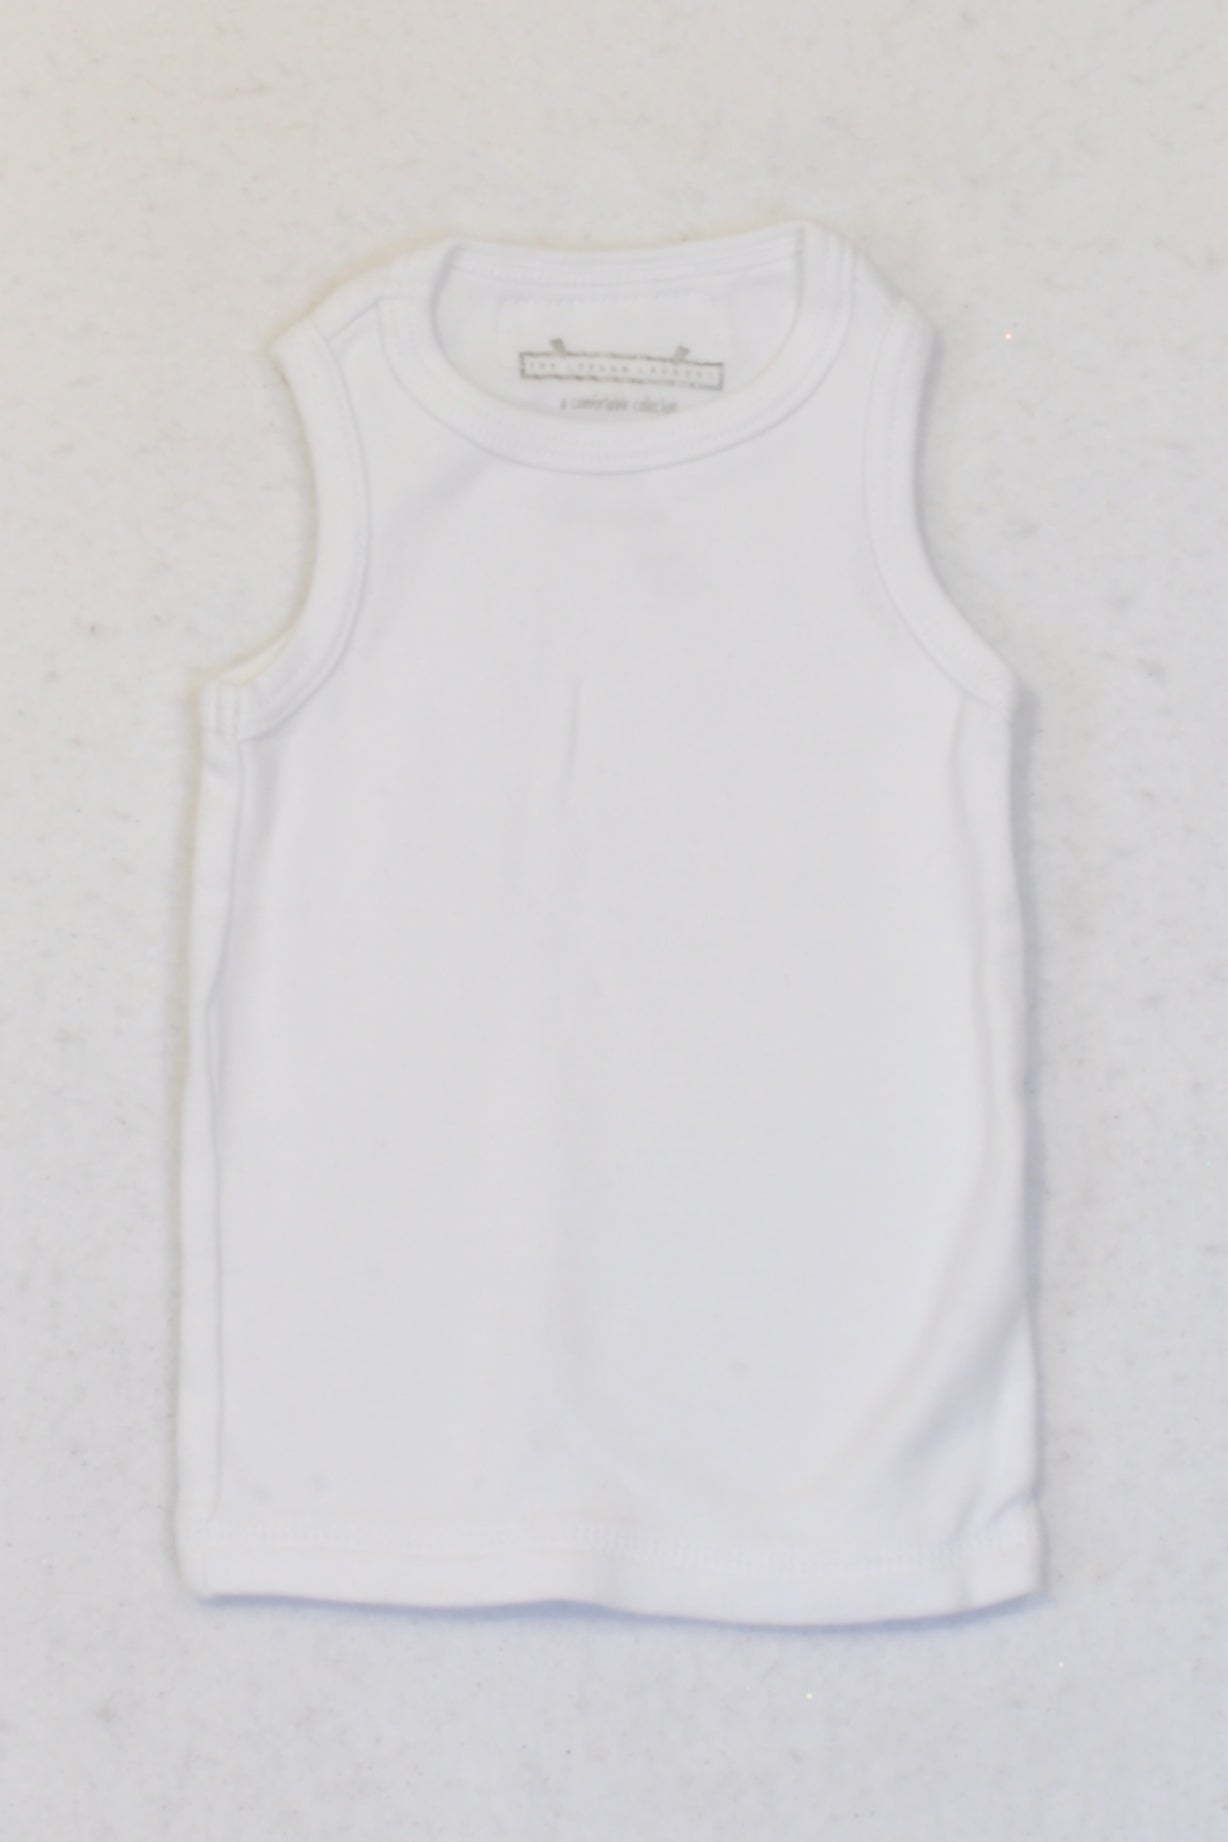 The London Laundry White Basic Tank Top Unisex 3-6 months